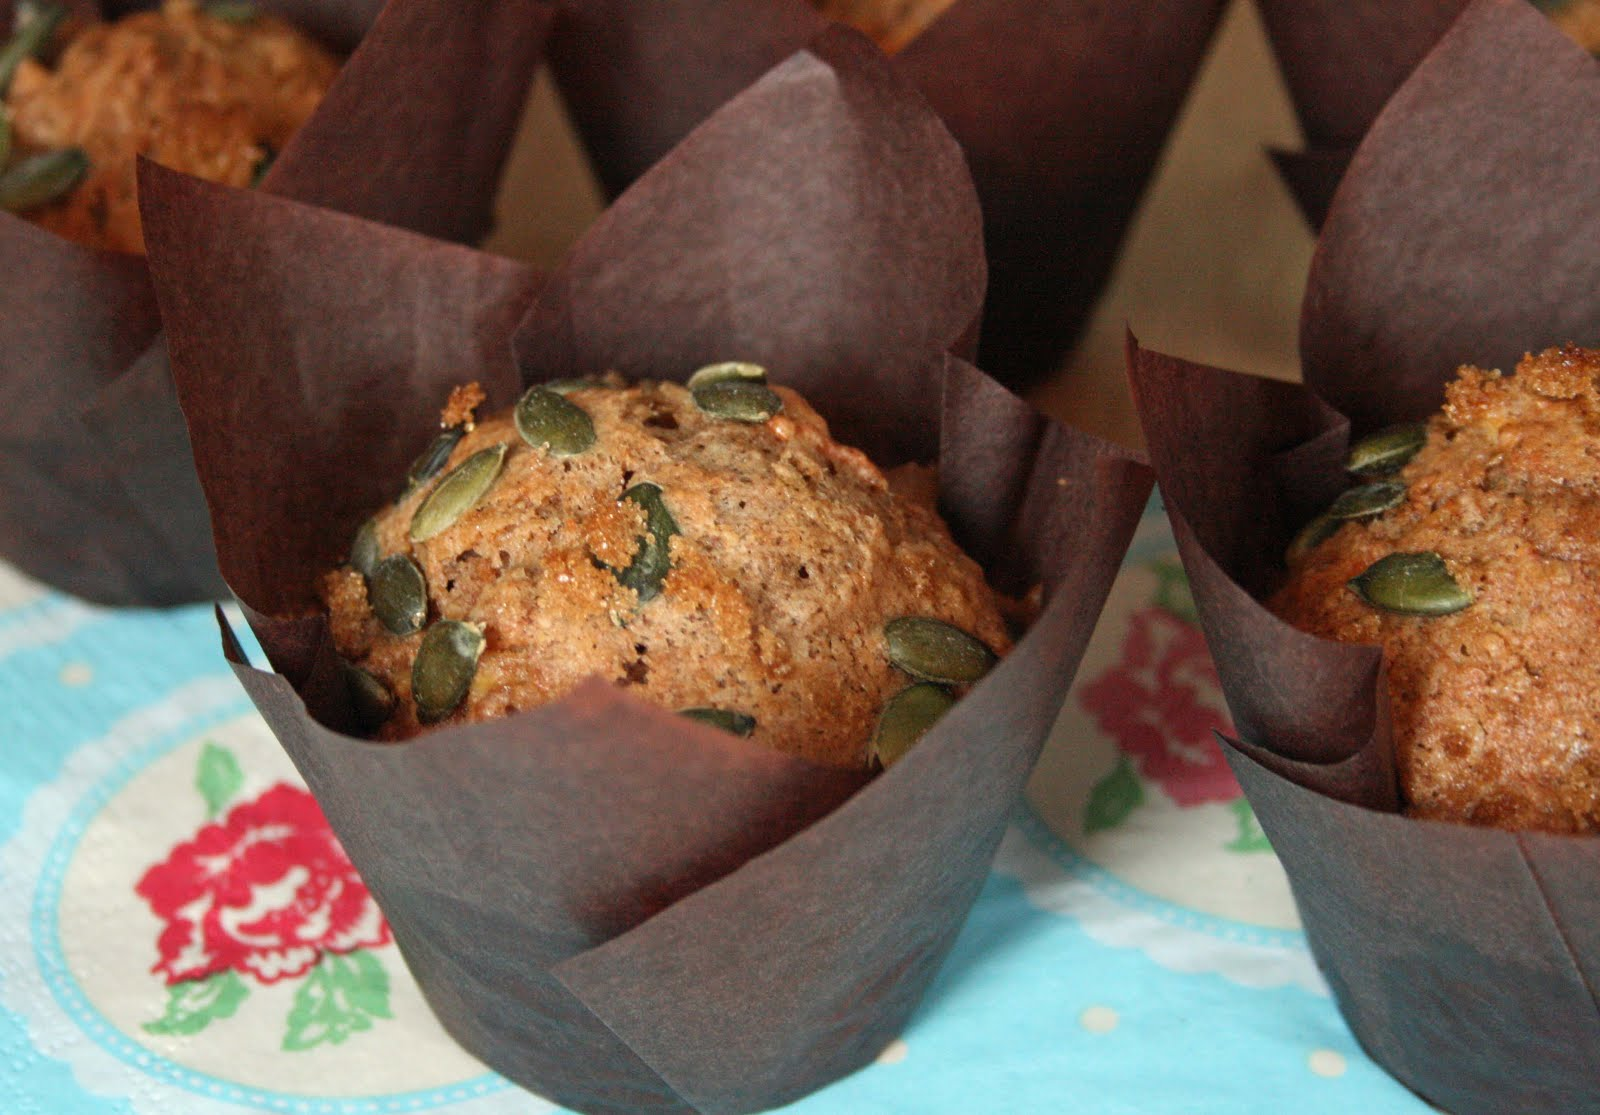 used some tulip muffin cases to give that deli style finish which ...